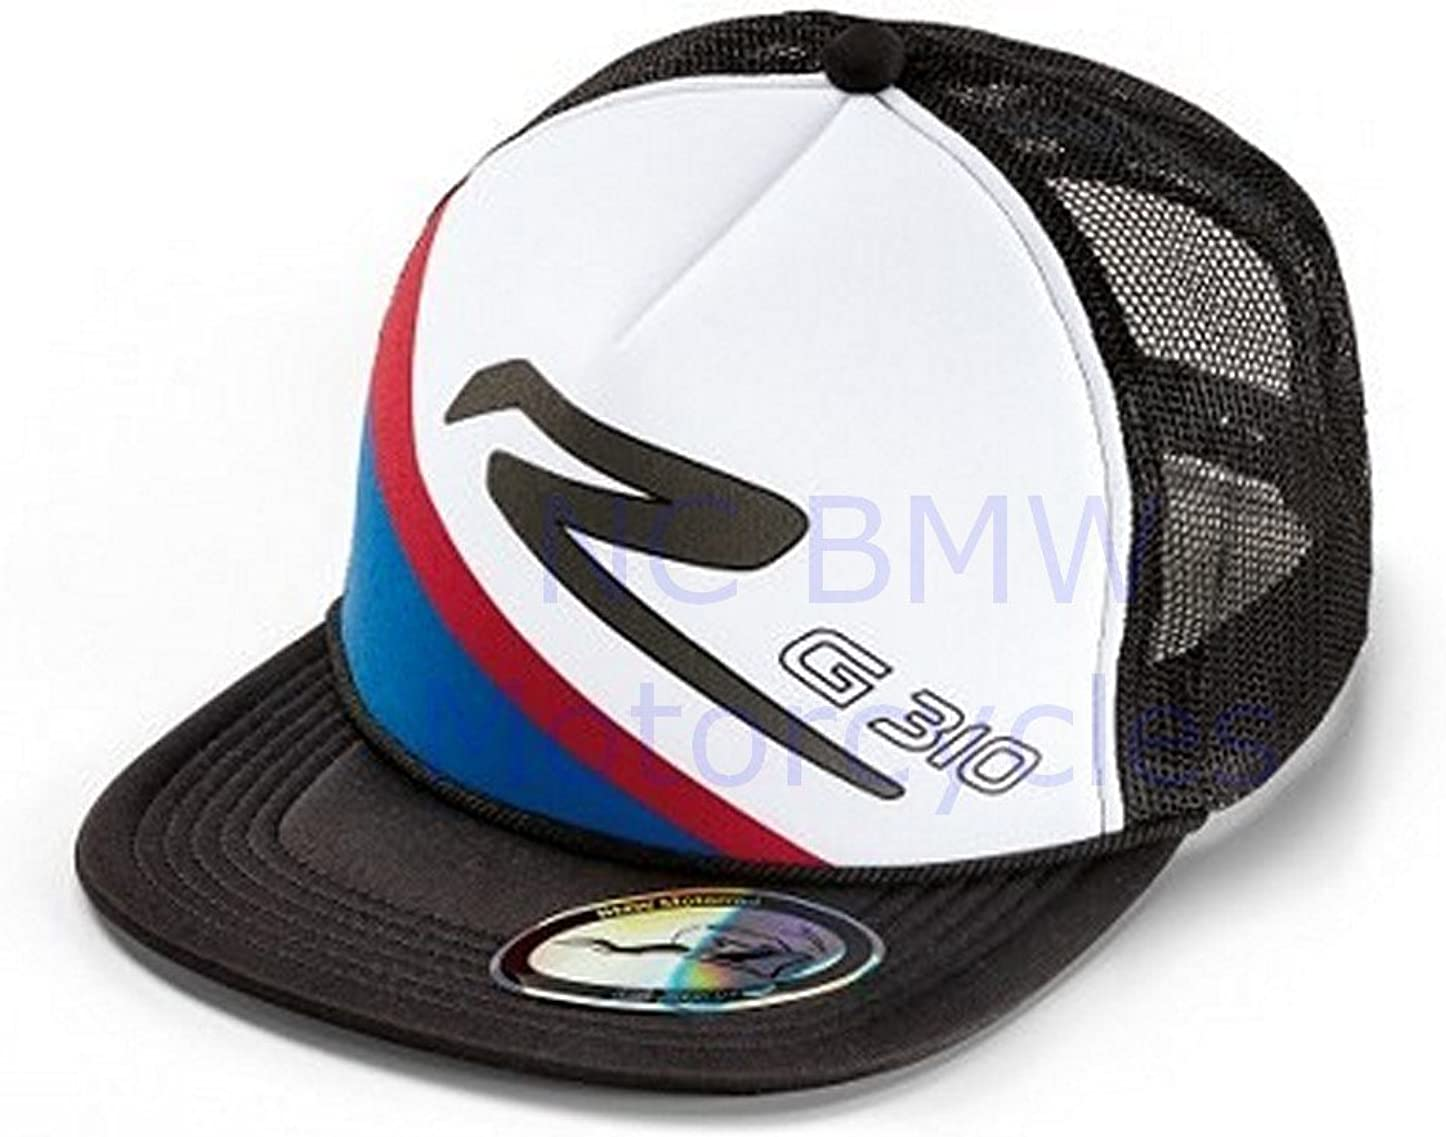 BMW Genuine Motorrad Motorcycle Smart Cc Cap Black//White//Red//Blue One Size